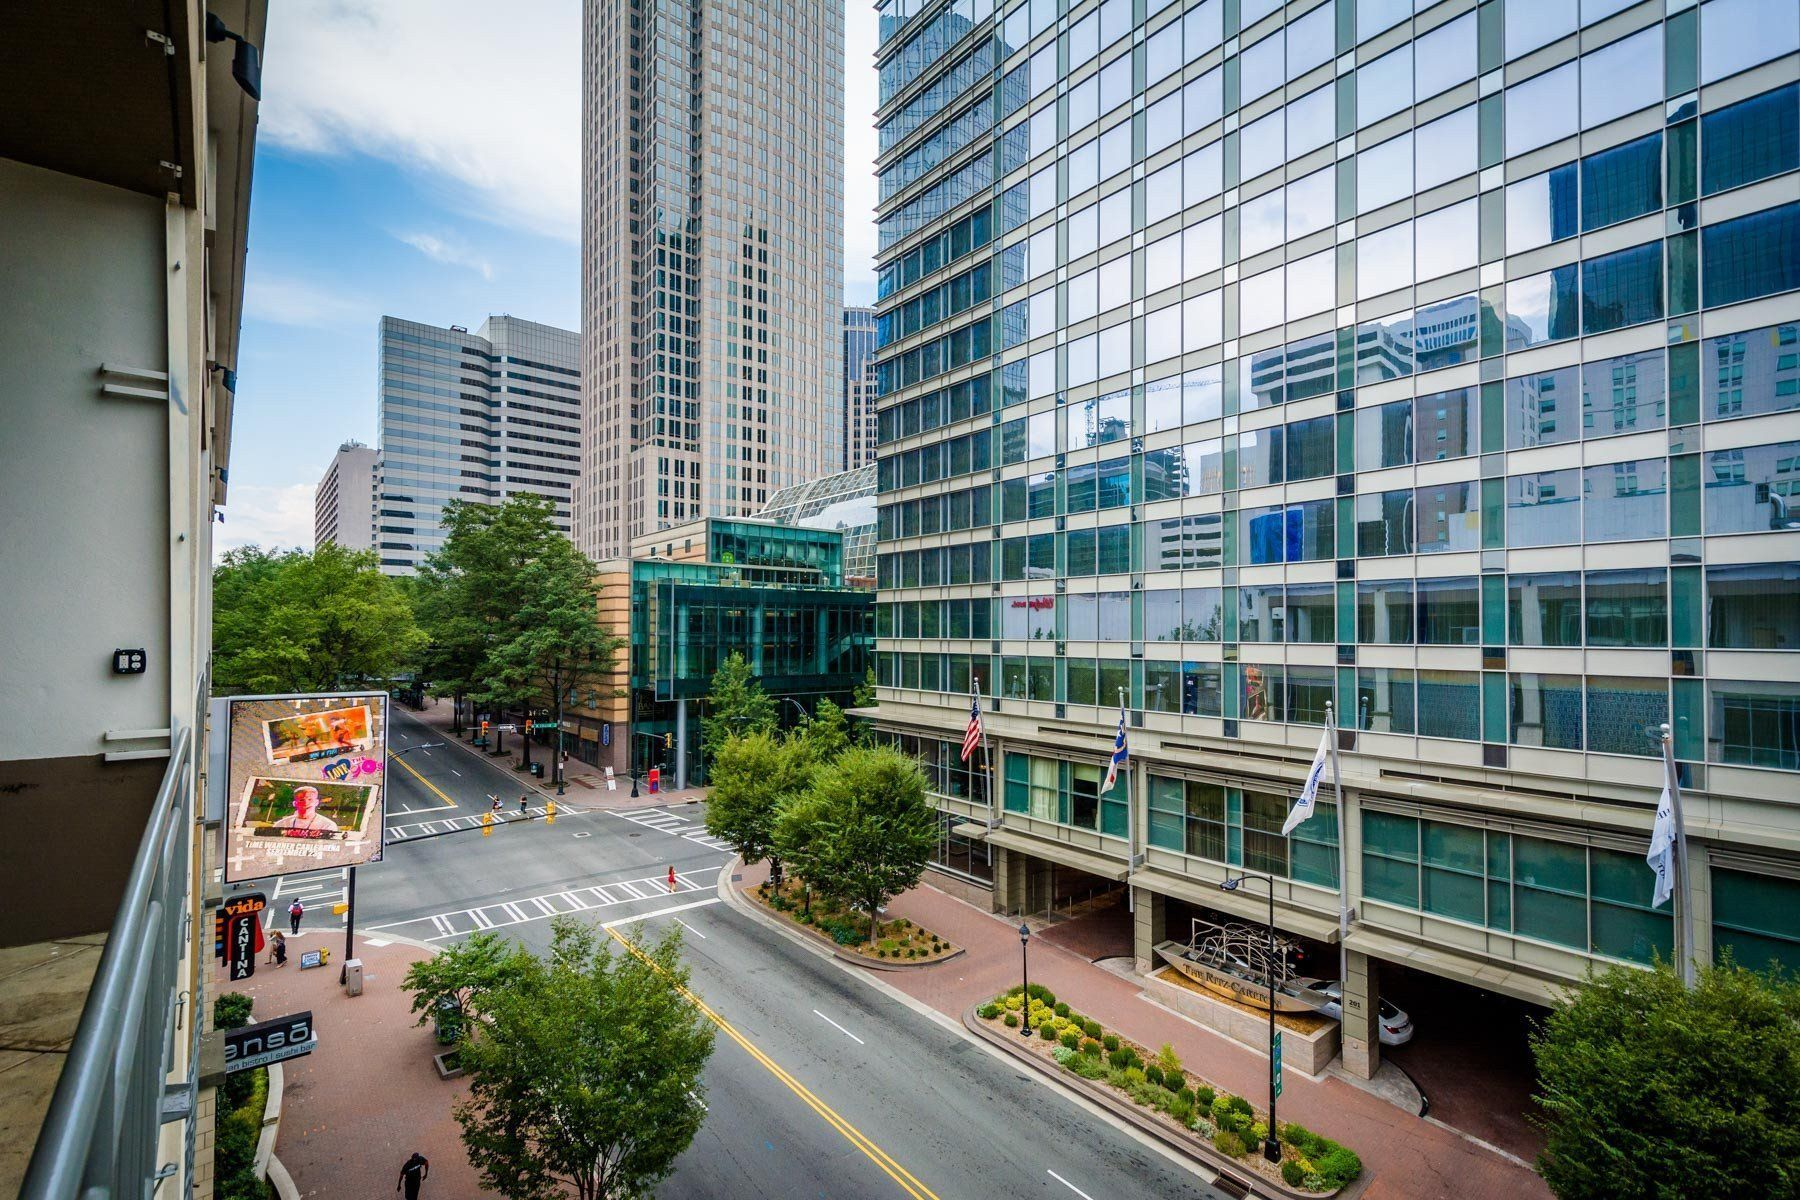 View of modern buildings and intersection in uptown charlotte north